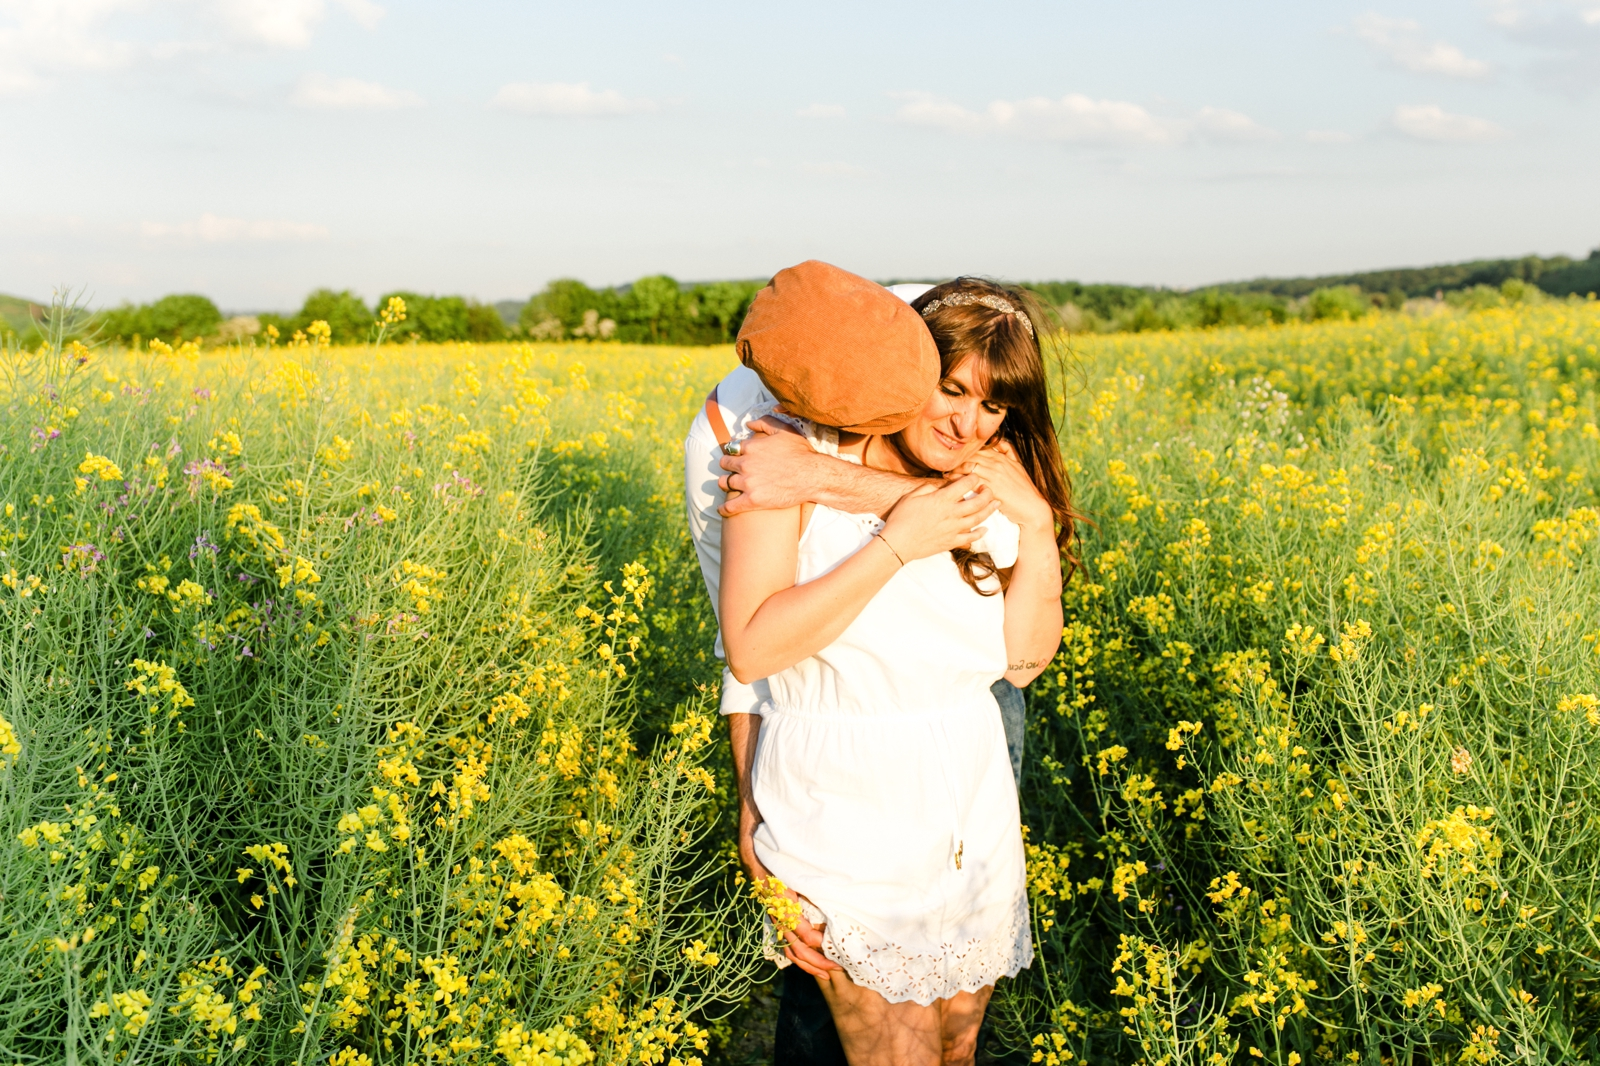 Monstergraphie_Engagementshooting_Jenny_und_Karsten05.jpg?fit=1600%2C1066